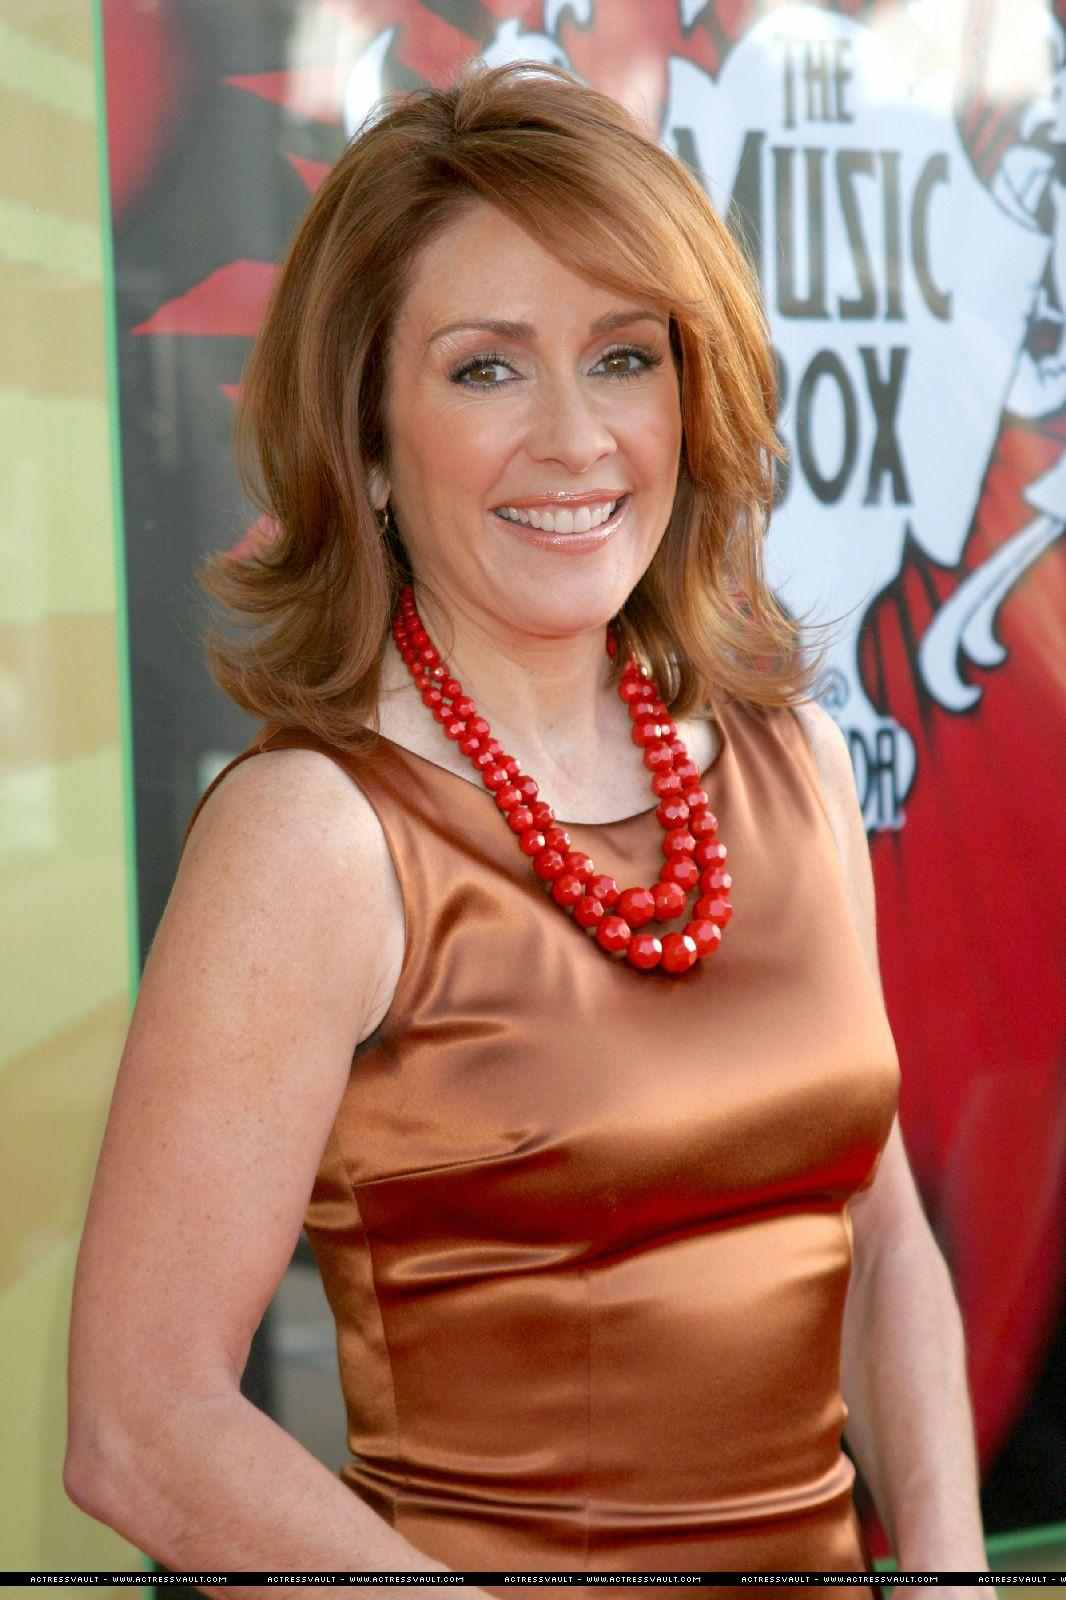 Patricia Heaton born March 4, 1958 (age 60)